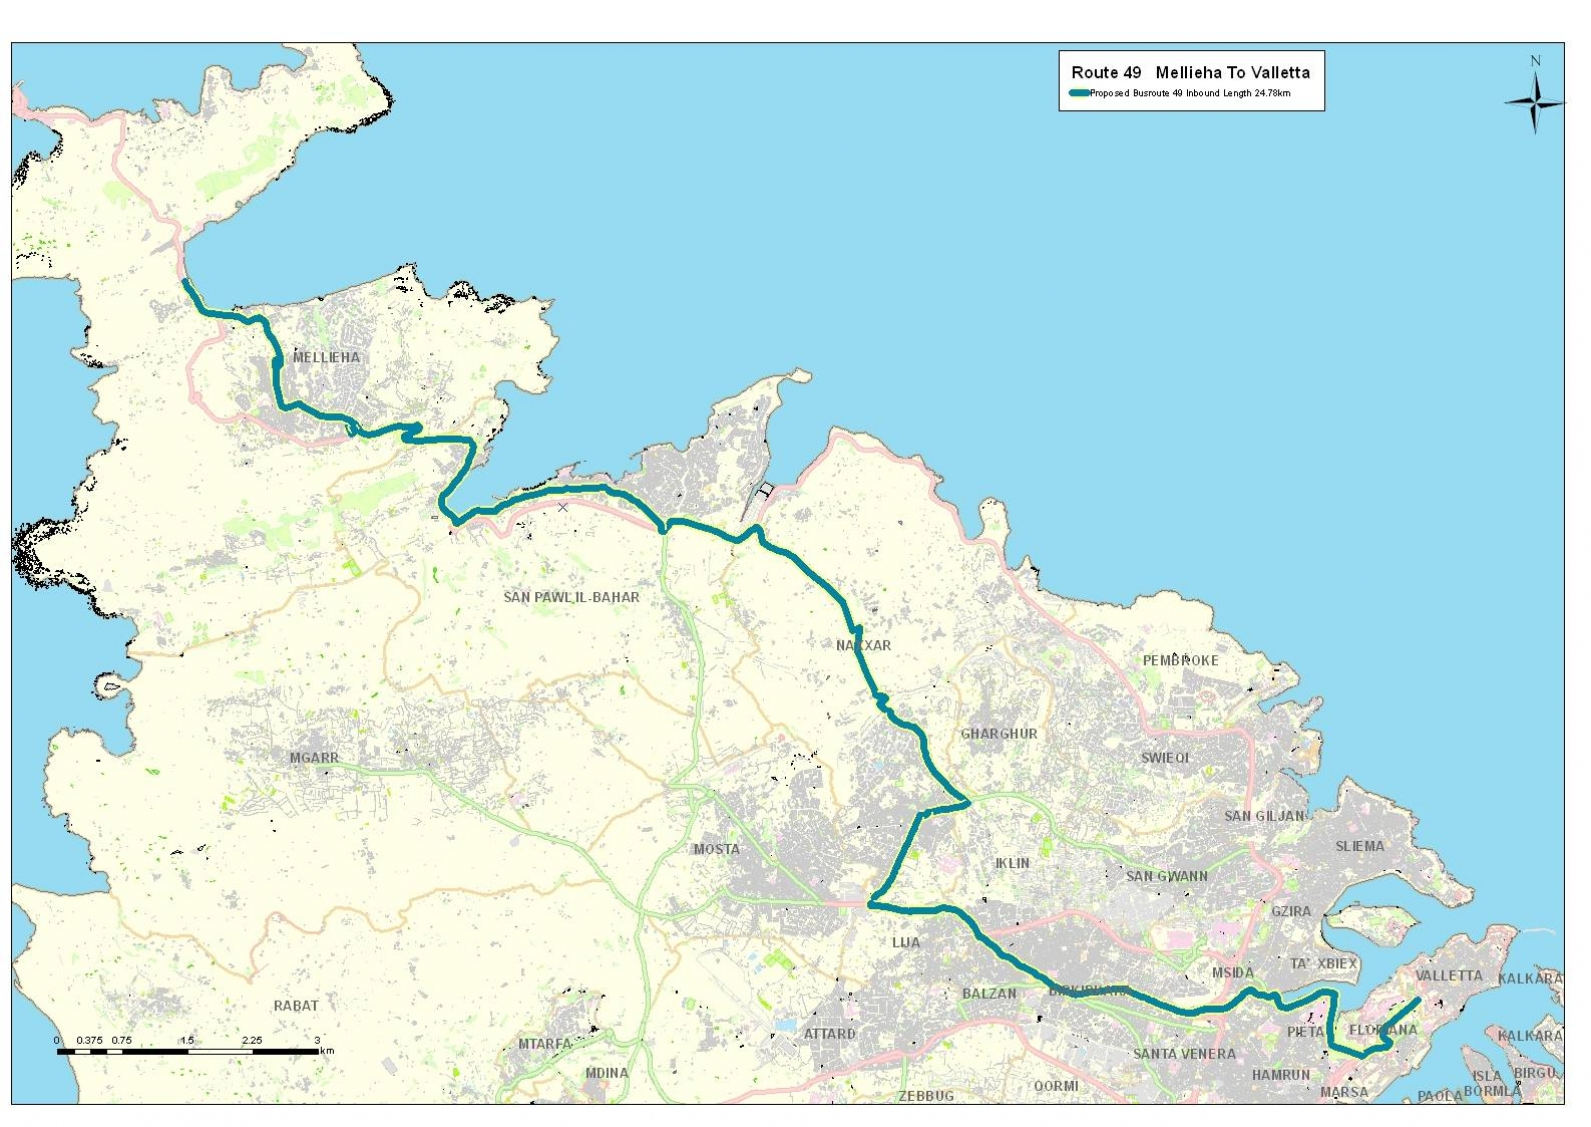 Land-current-network-routes-and-schedules-Cirkewwa-mellieha-sliema-3